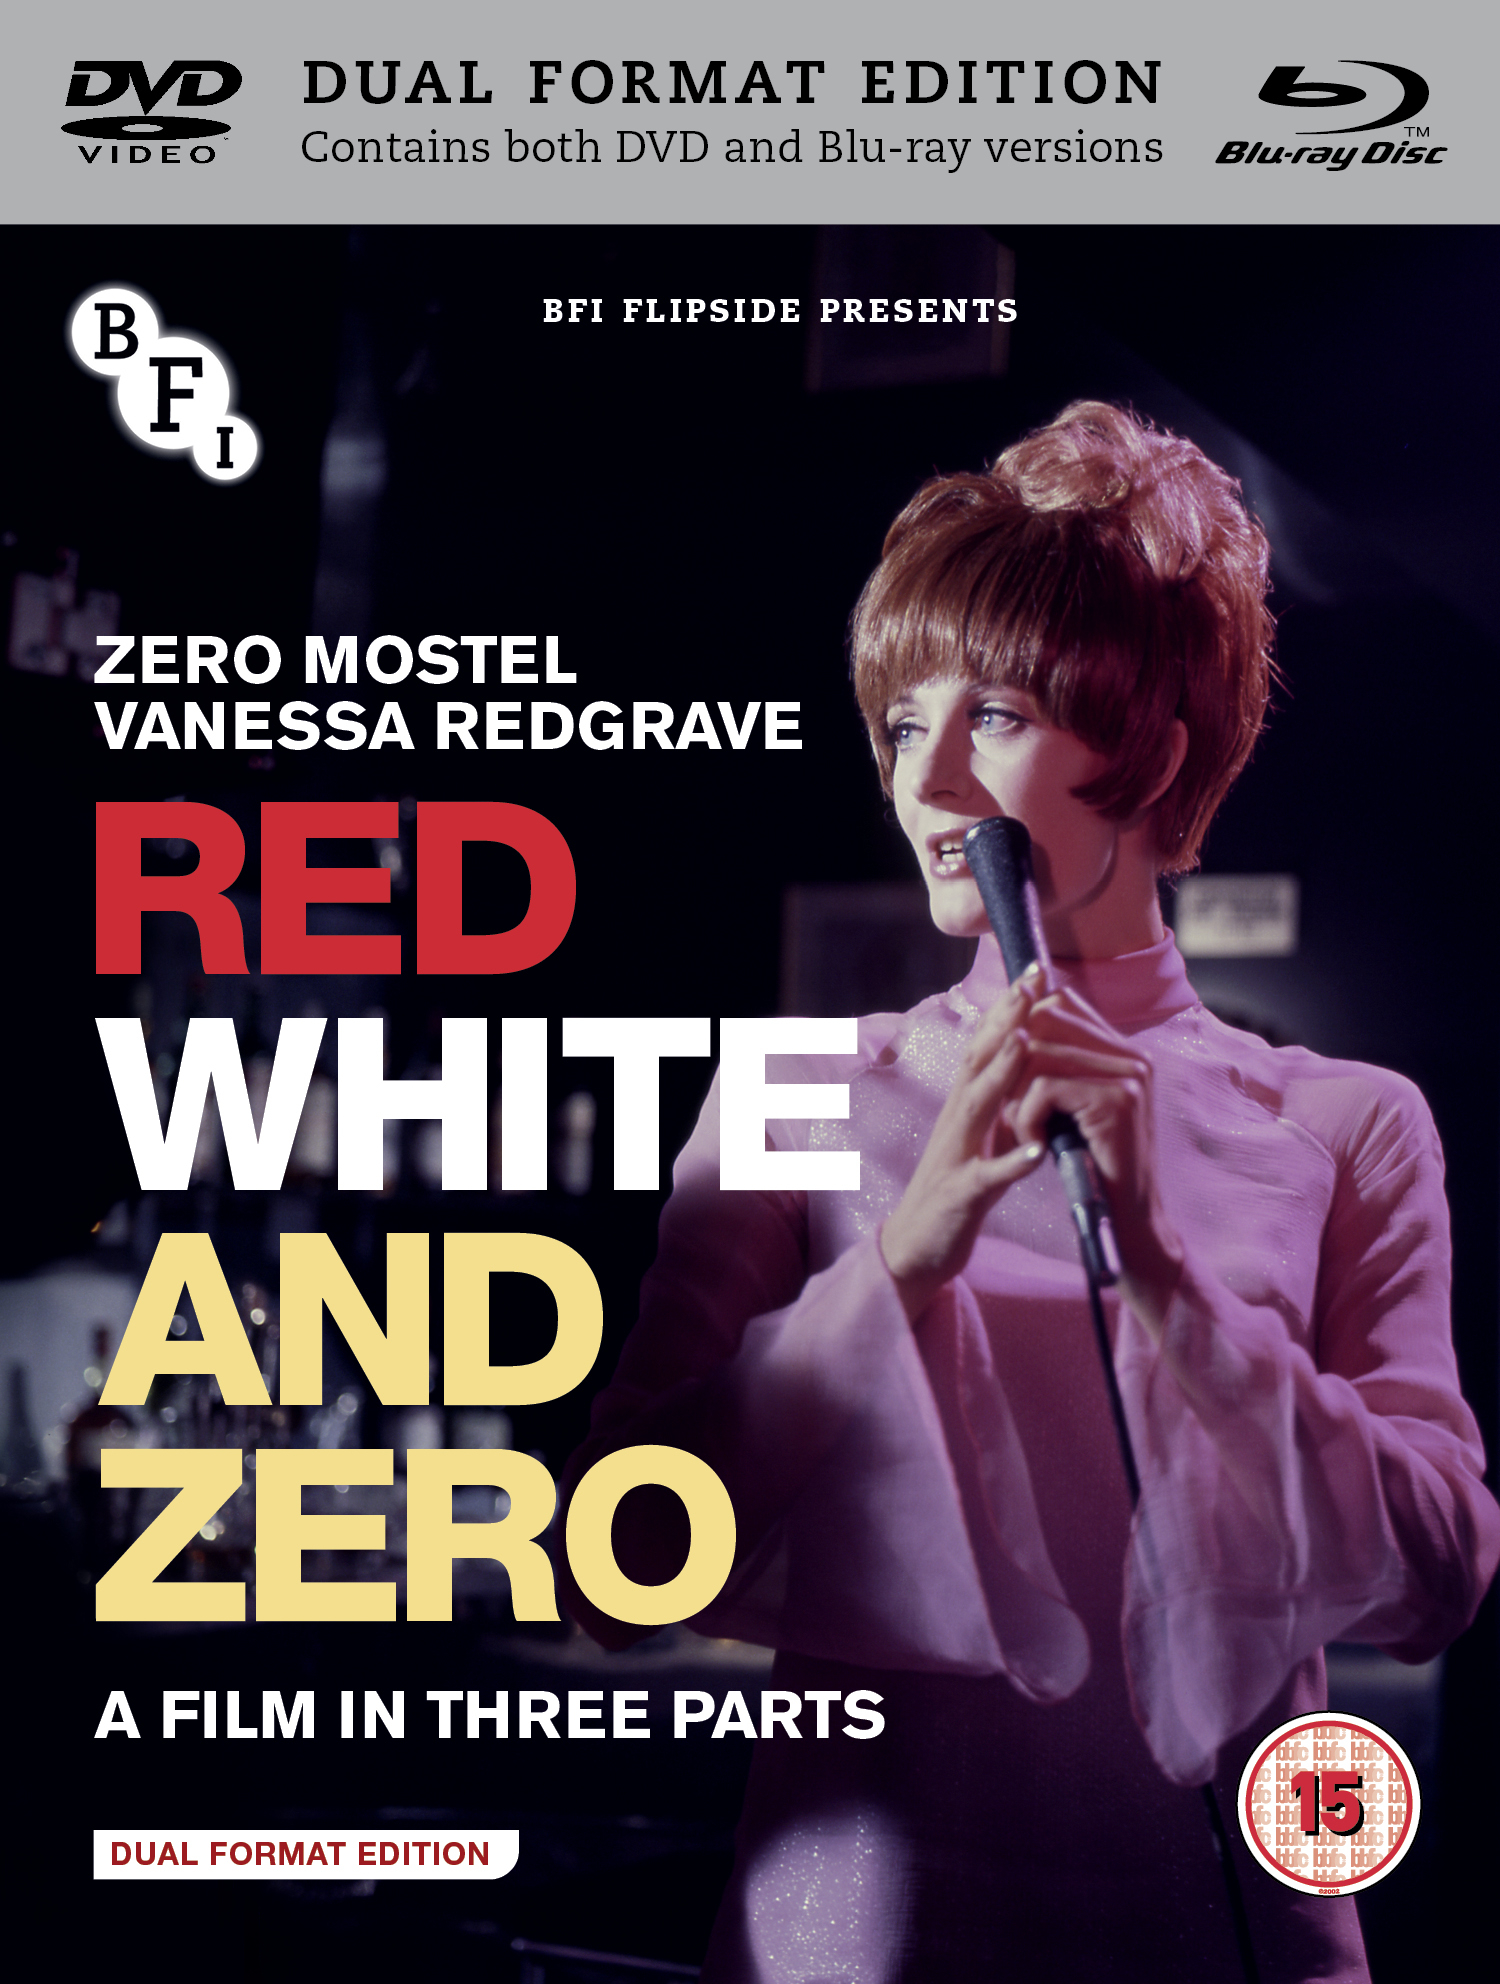 Buy PRE-ORDER Red, White and Zero (Flipside 036) (Dual Format Edition)